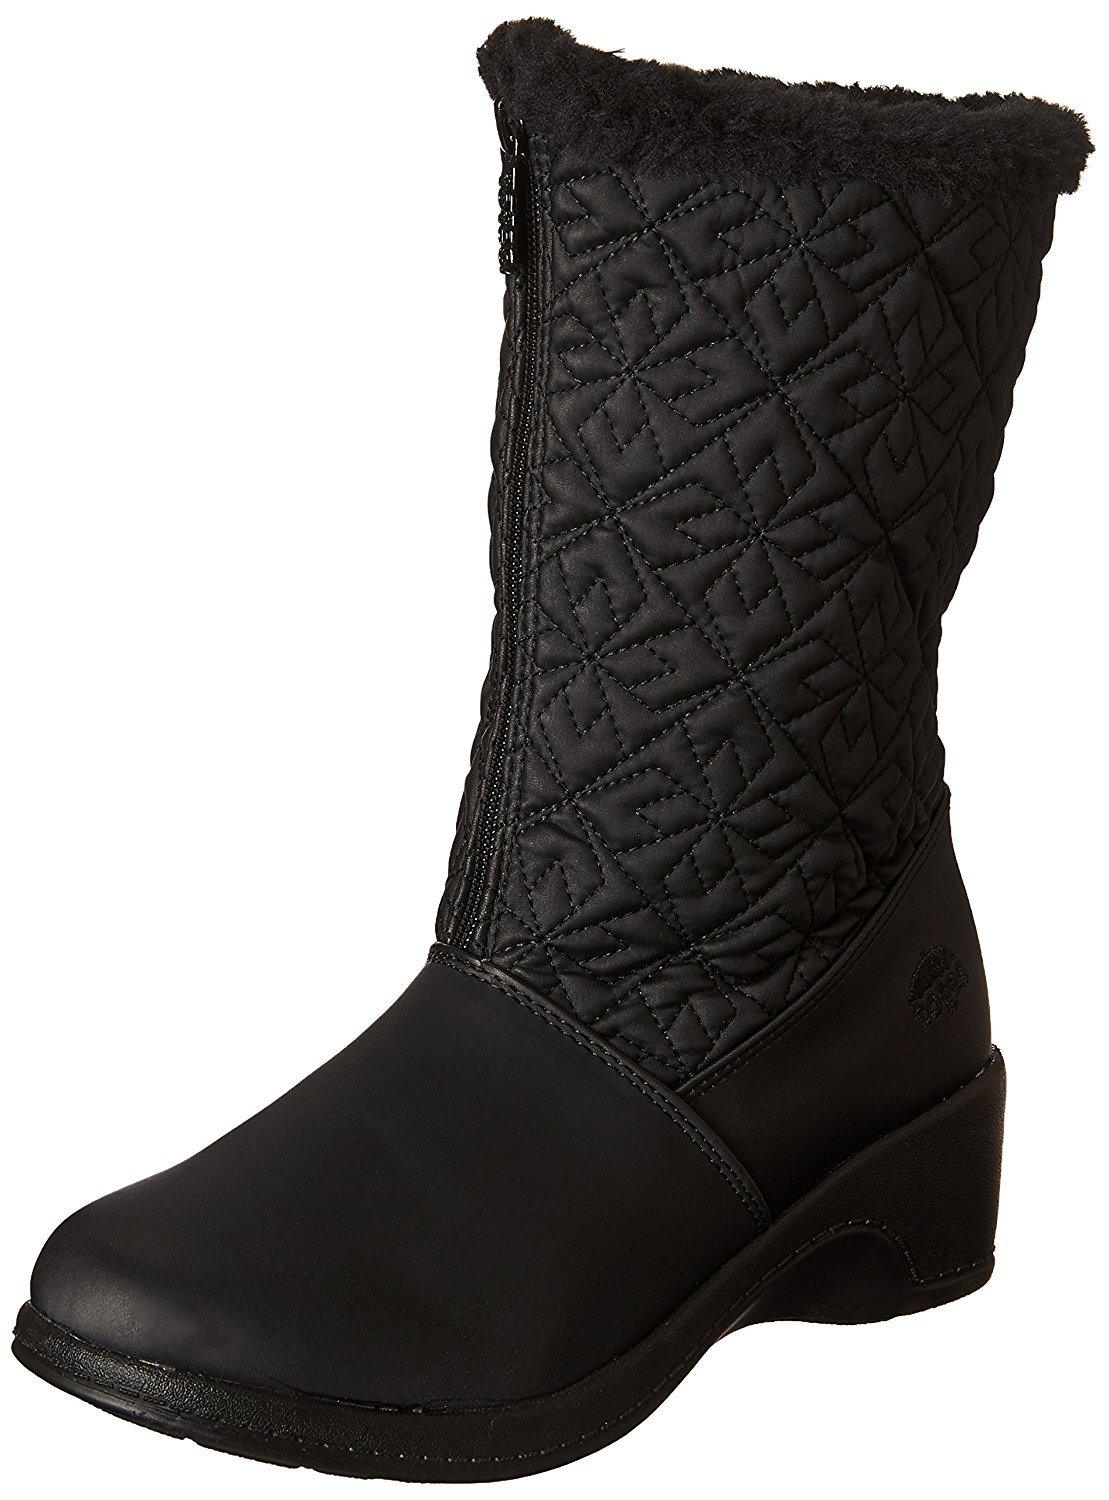 totes Women's Nancy Cold Weather Boot, Black, 6 M US